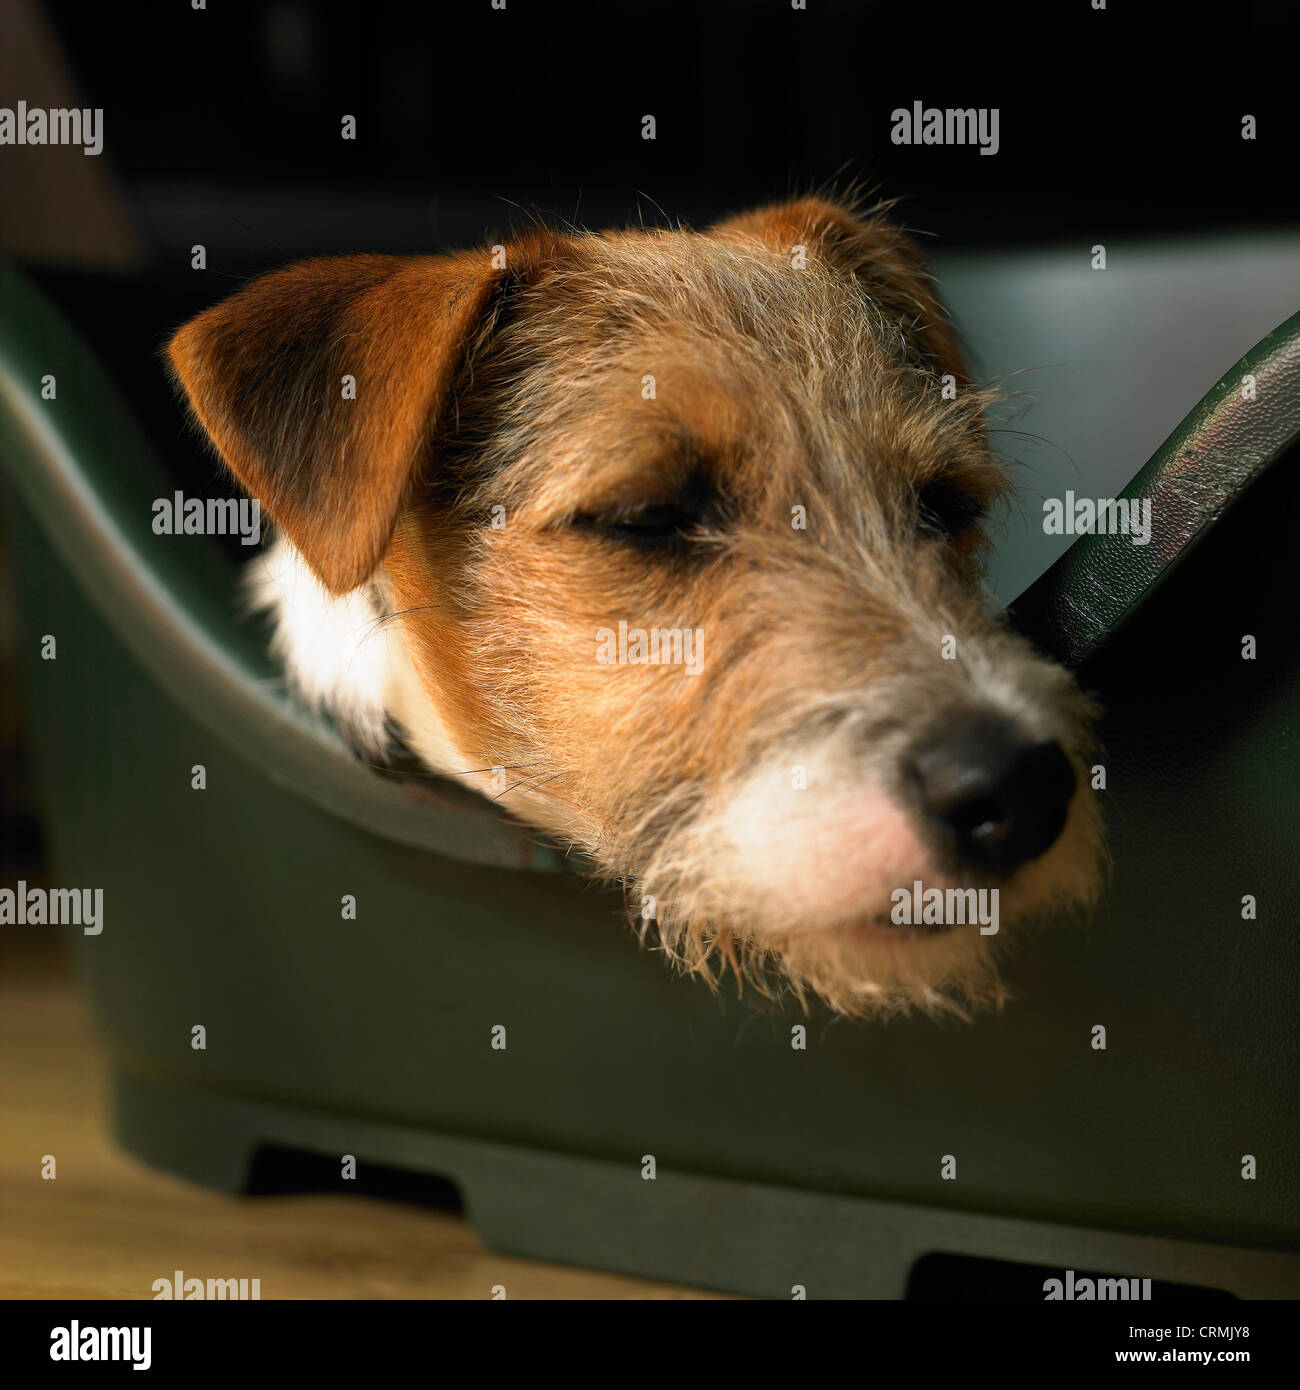 A Parson Russell terrier dog, resting in its basket - Stock Image